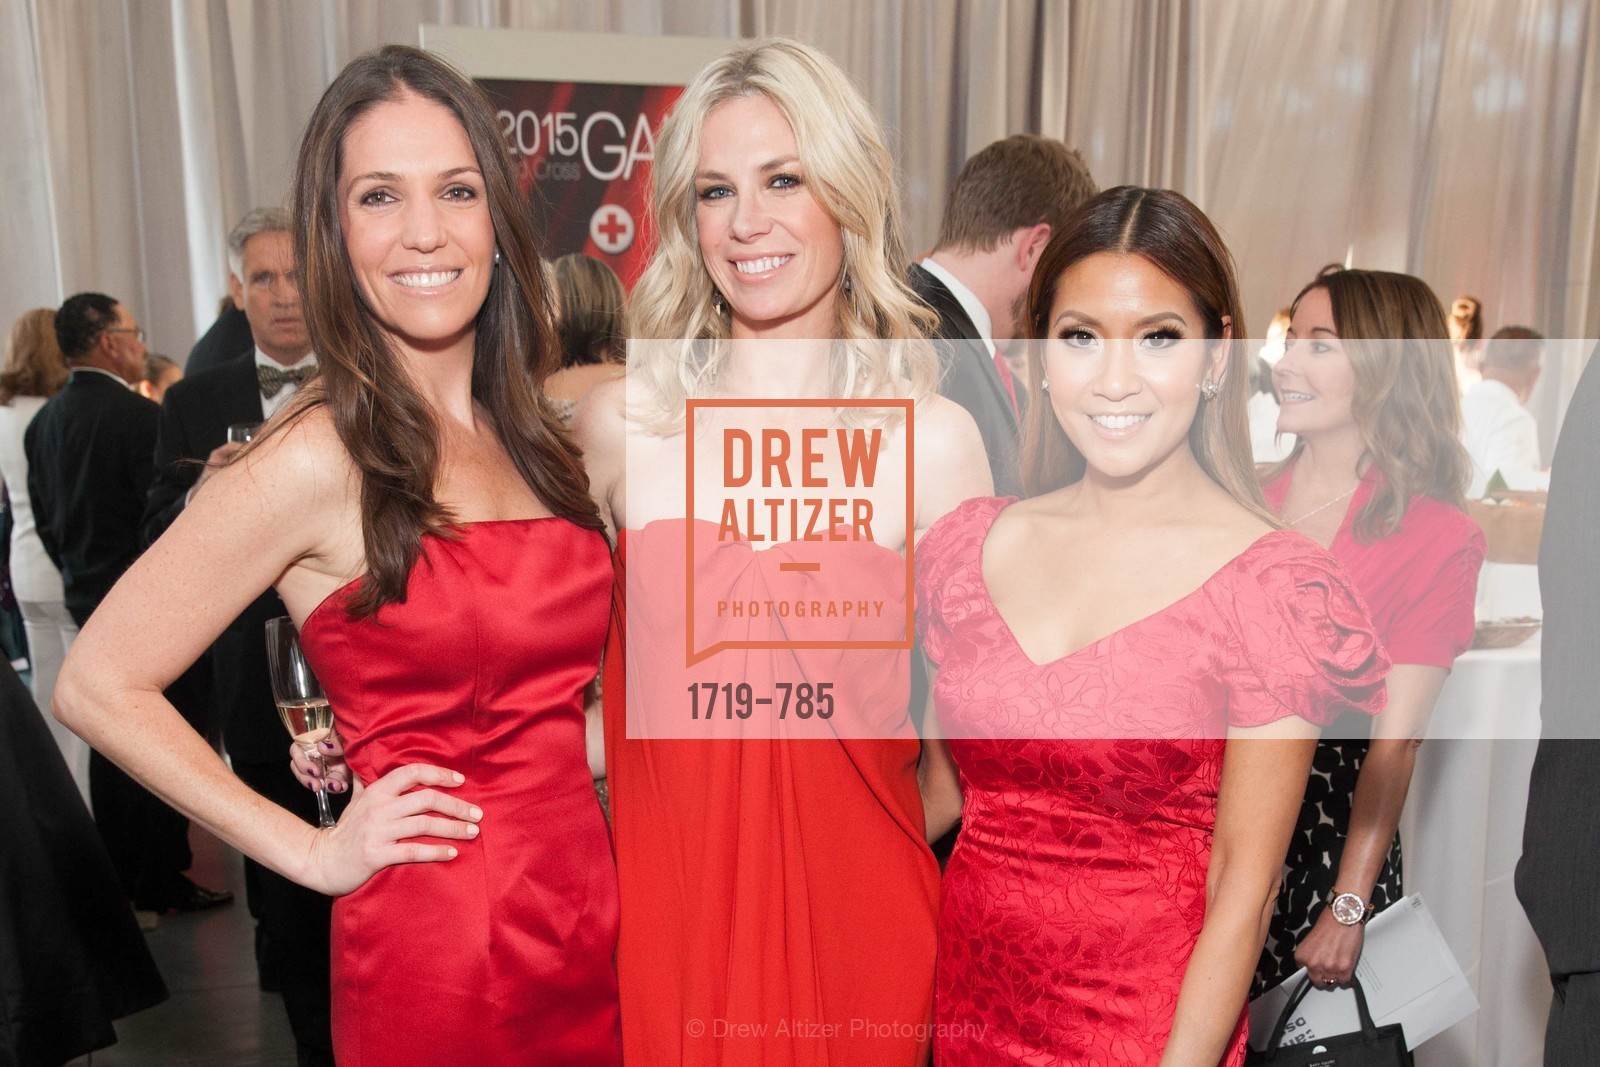 Susie Hall, Colby Hallen, Lillian Phan, 2015 RED CROSS Gala, US, April 11th, 2015,Drew Altizer, Drew Altizer Photography, full-service agency, private events, San Francisco photographer, photographer california